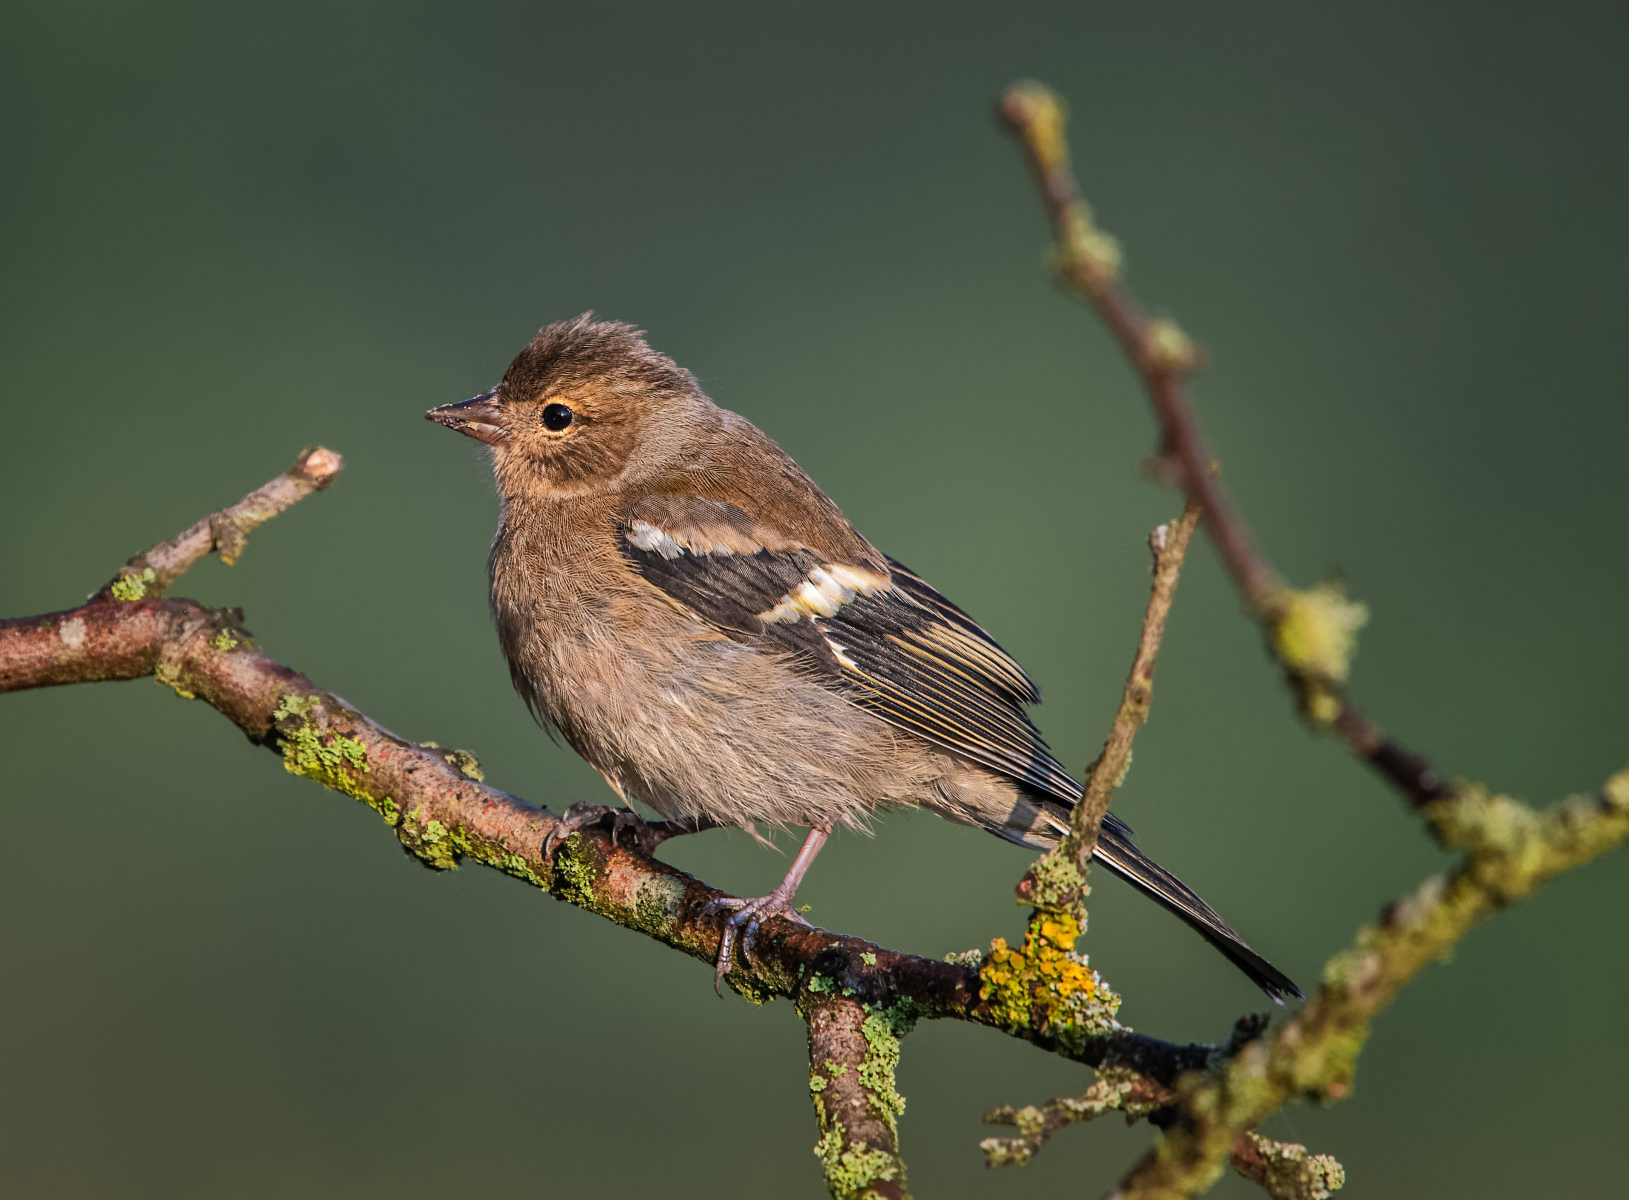 female chaffinch on lichen covered branch